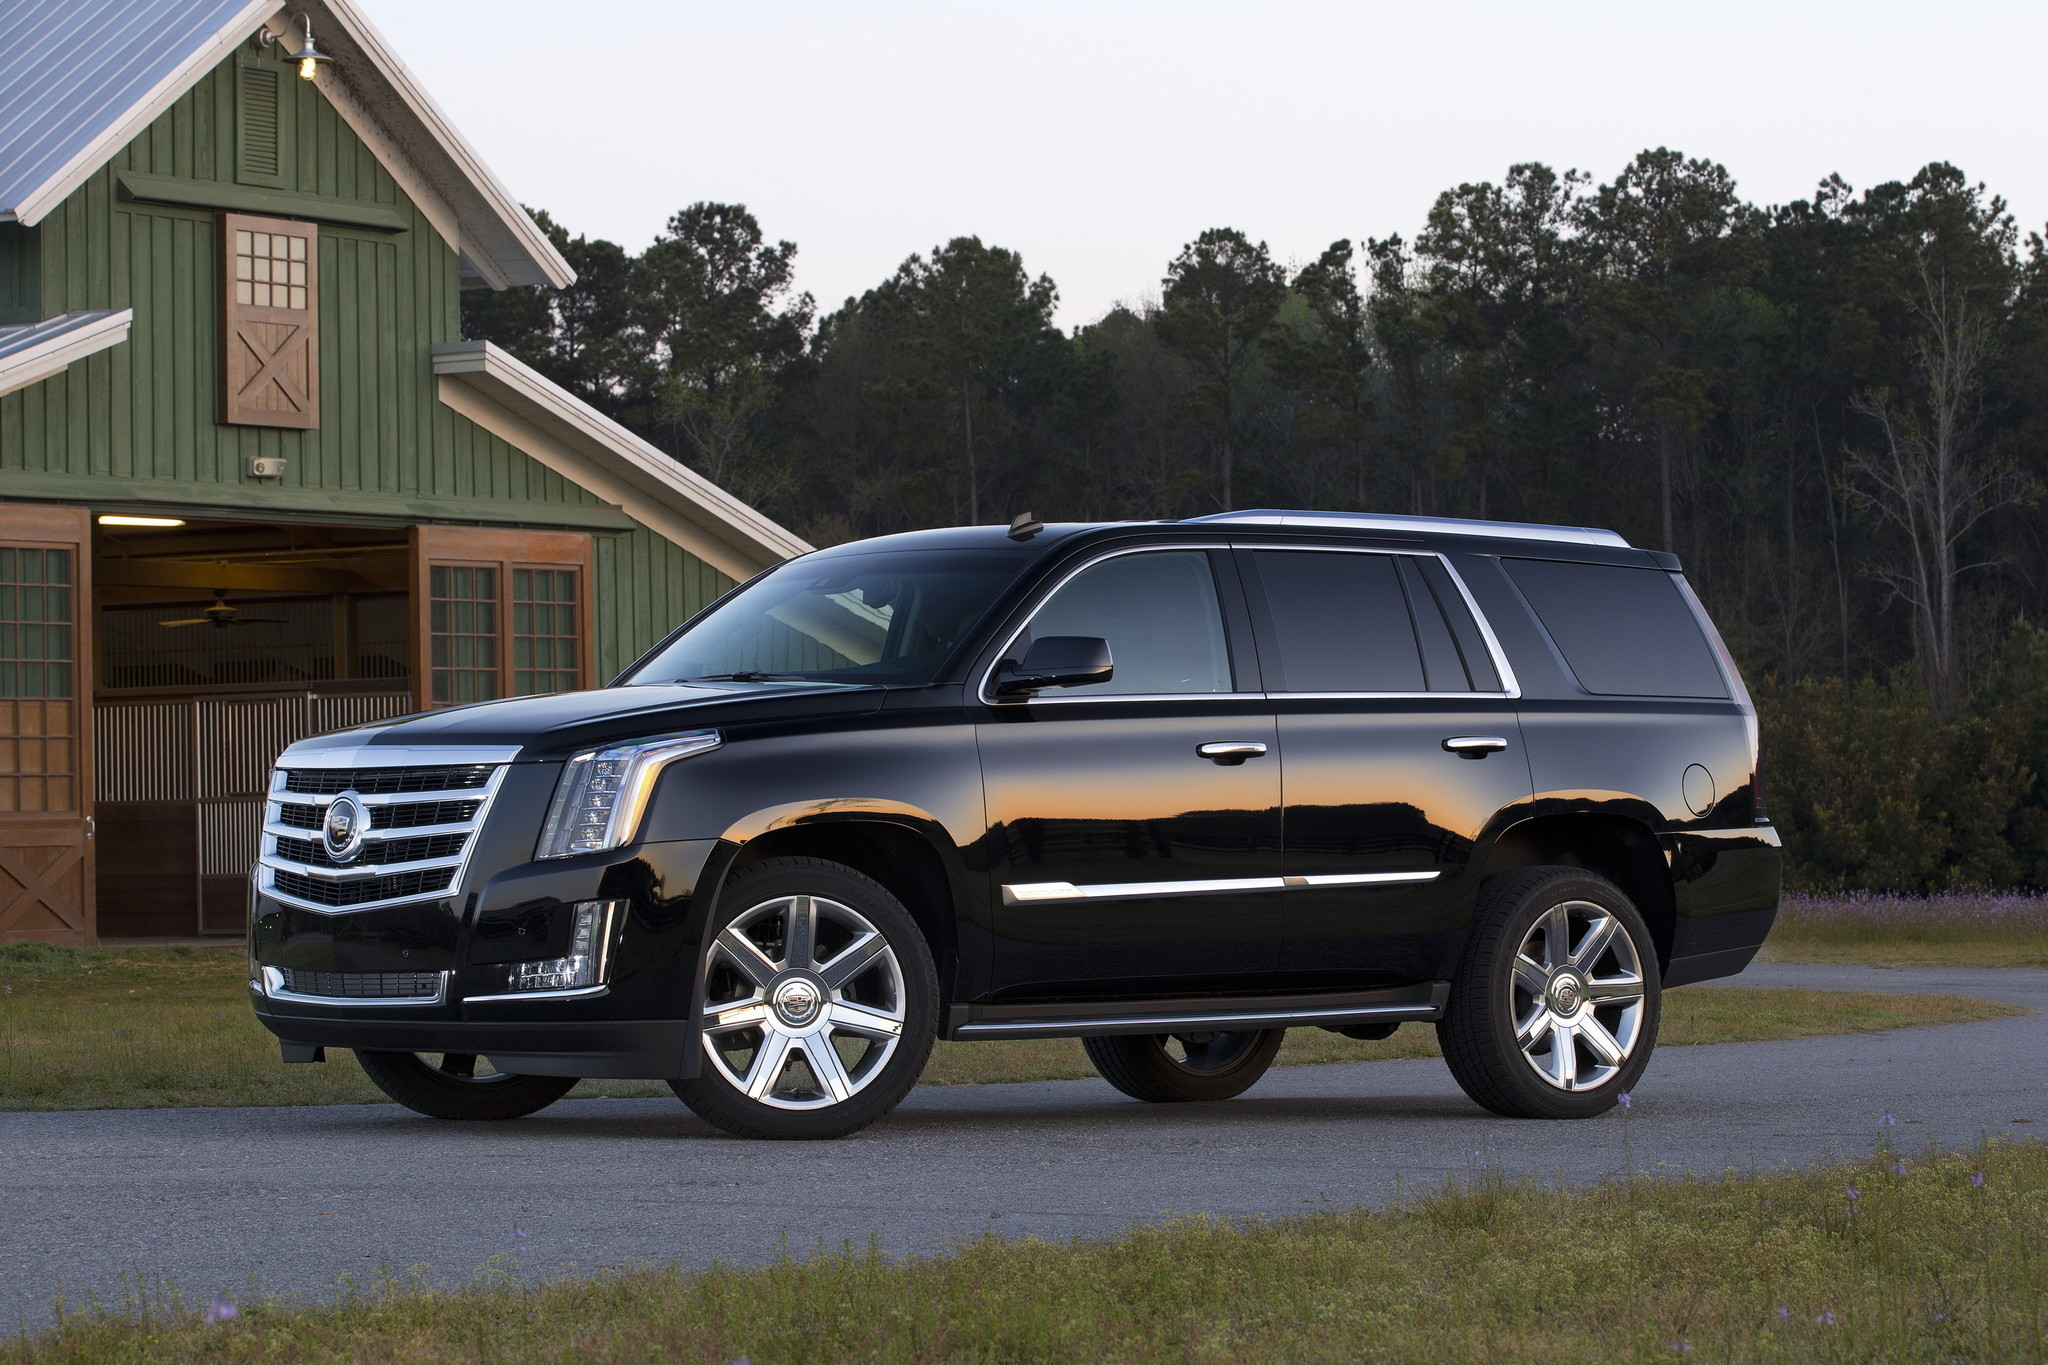 First Times Drive Cadillac S Escalade Can T Hide Humble